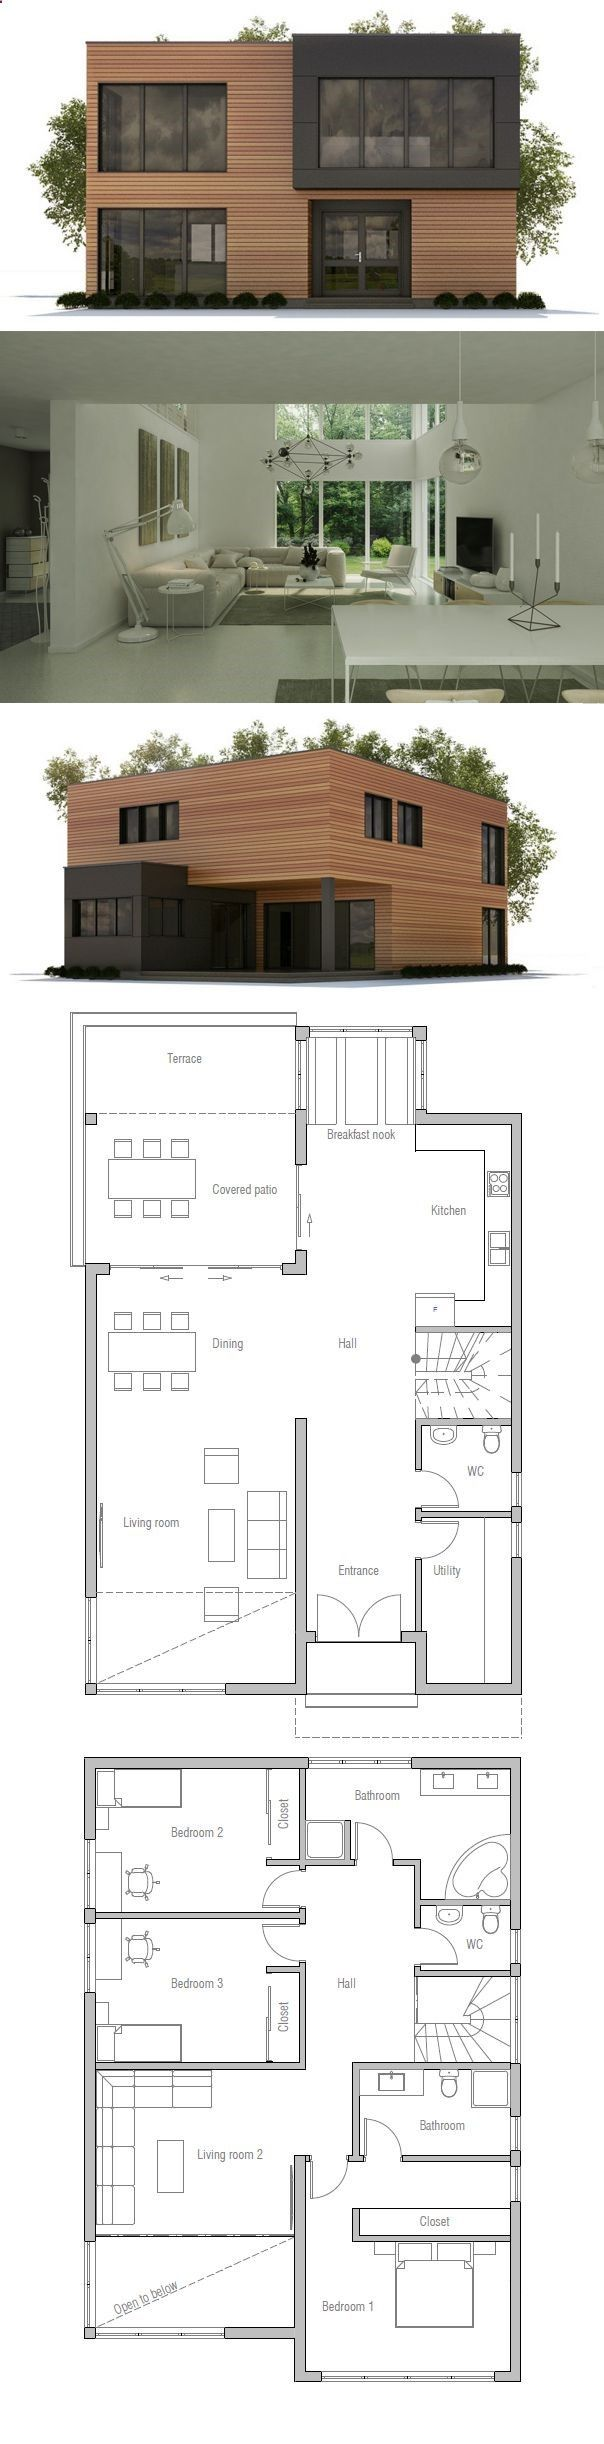 simple 3 bedroom house plans%0A Container Homes Plans  House Plan